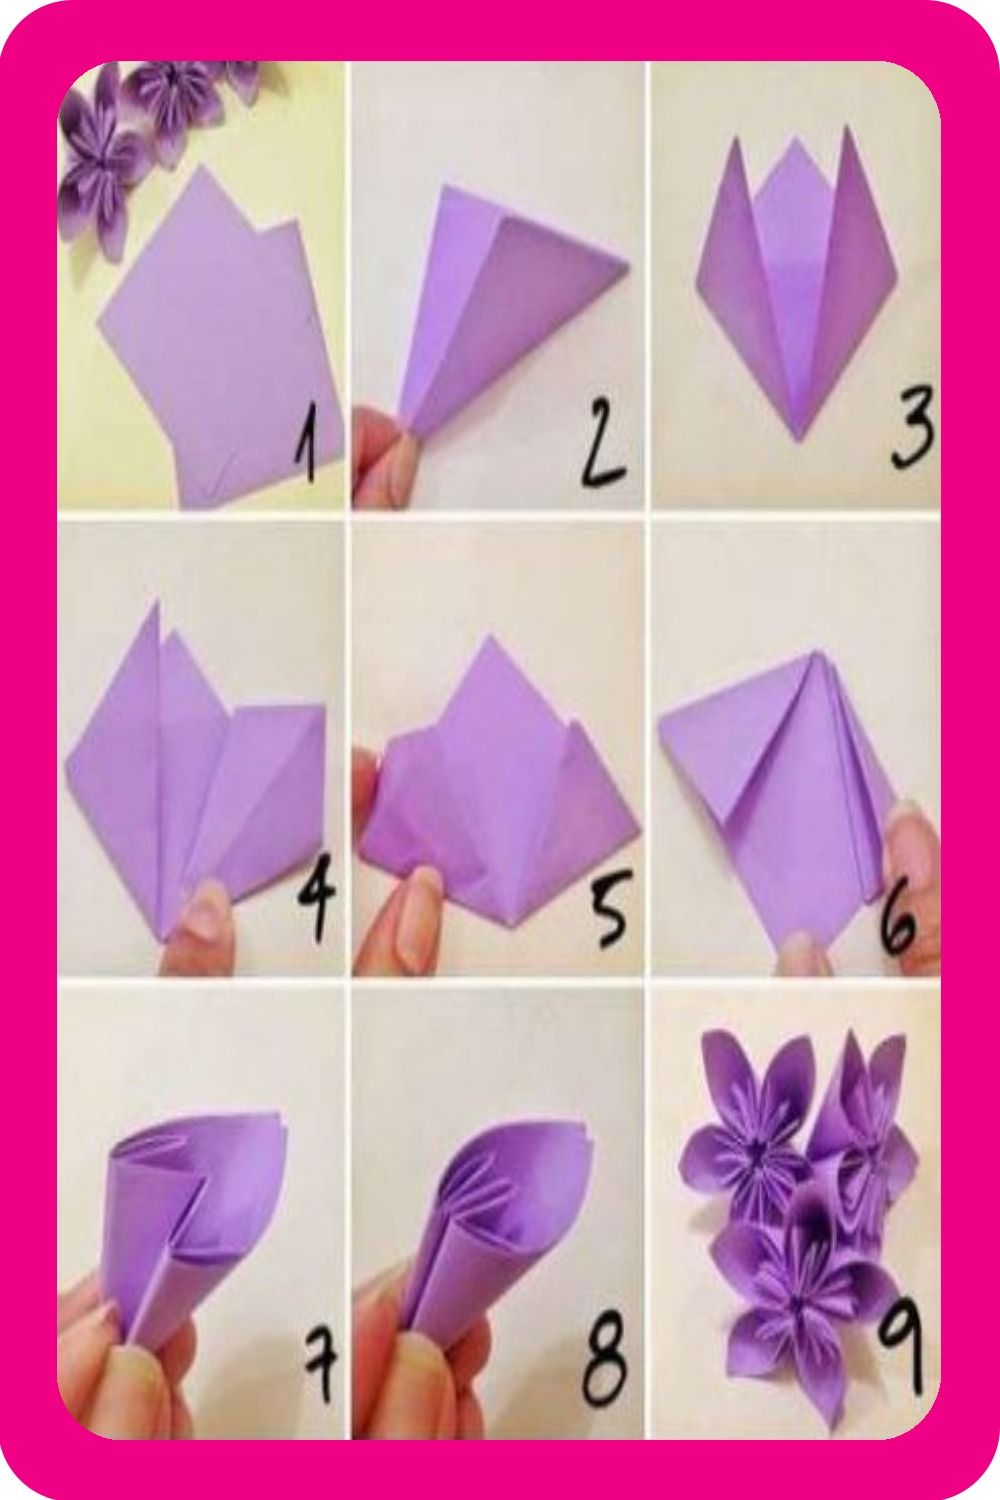 How to Make an Origami Sanbo (with Pictures) - wikiHow | 1500x1000